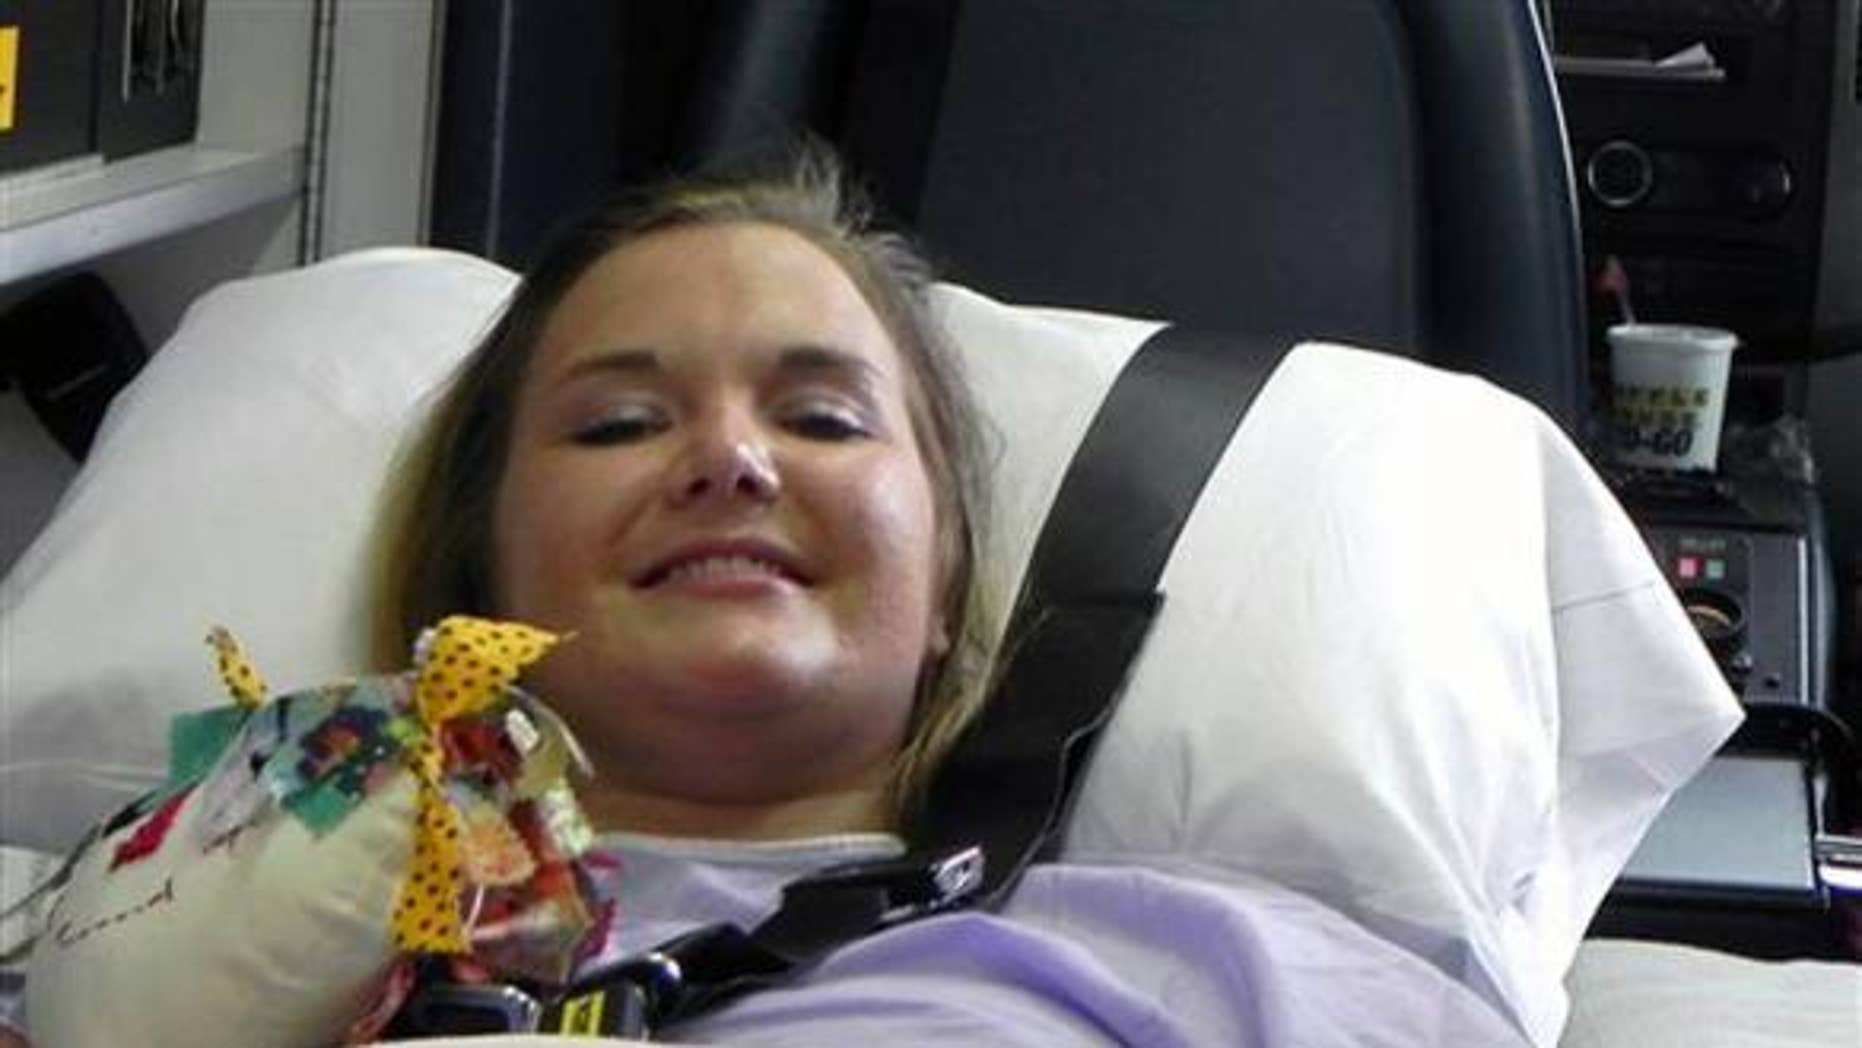 Aimee Copeland smiles as she leaves a hospital in Augusta Ga., July 2, headed for an inpatient rehabilitation clinic.